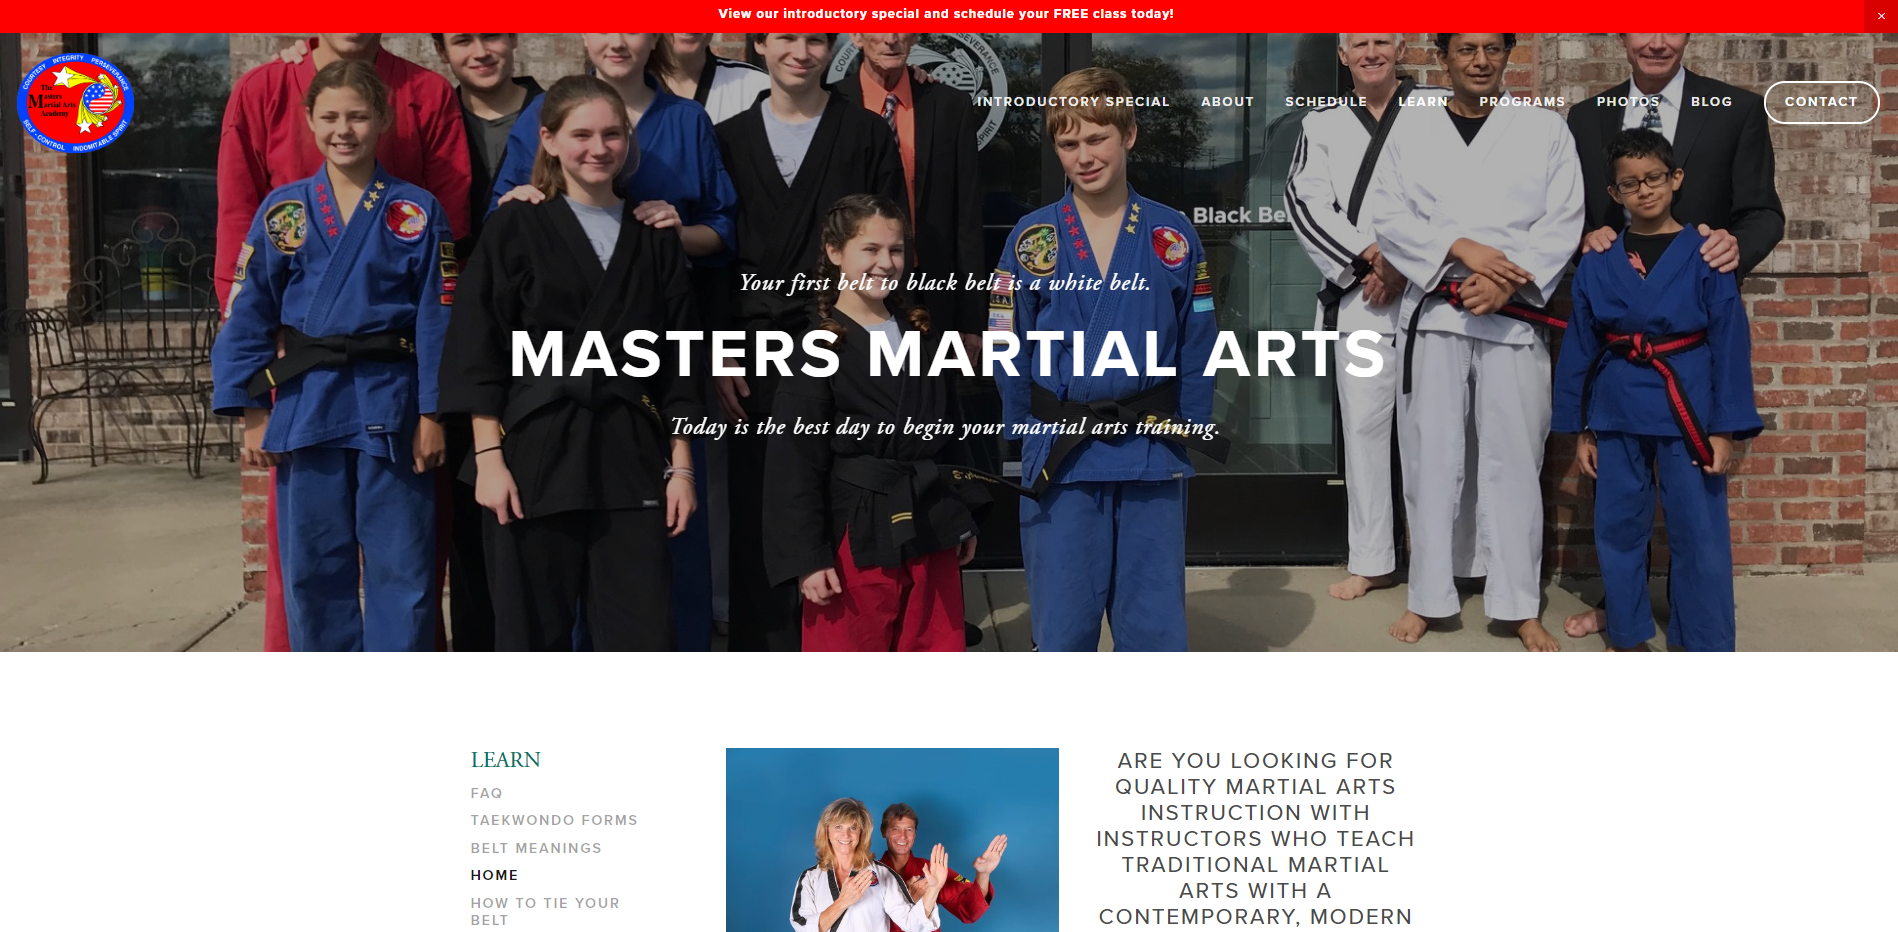 Masters Martial Arts Website by Mill Creek Creative